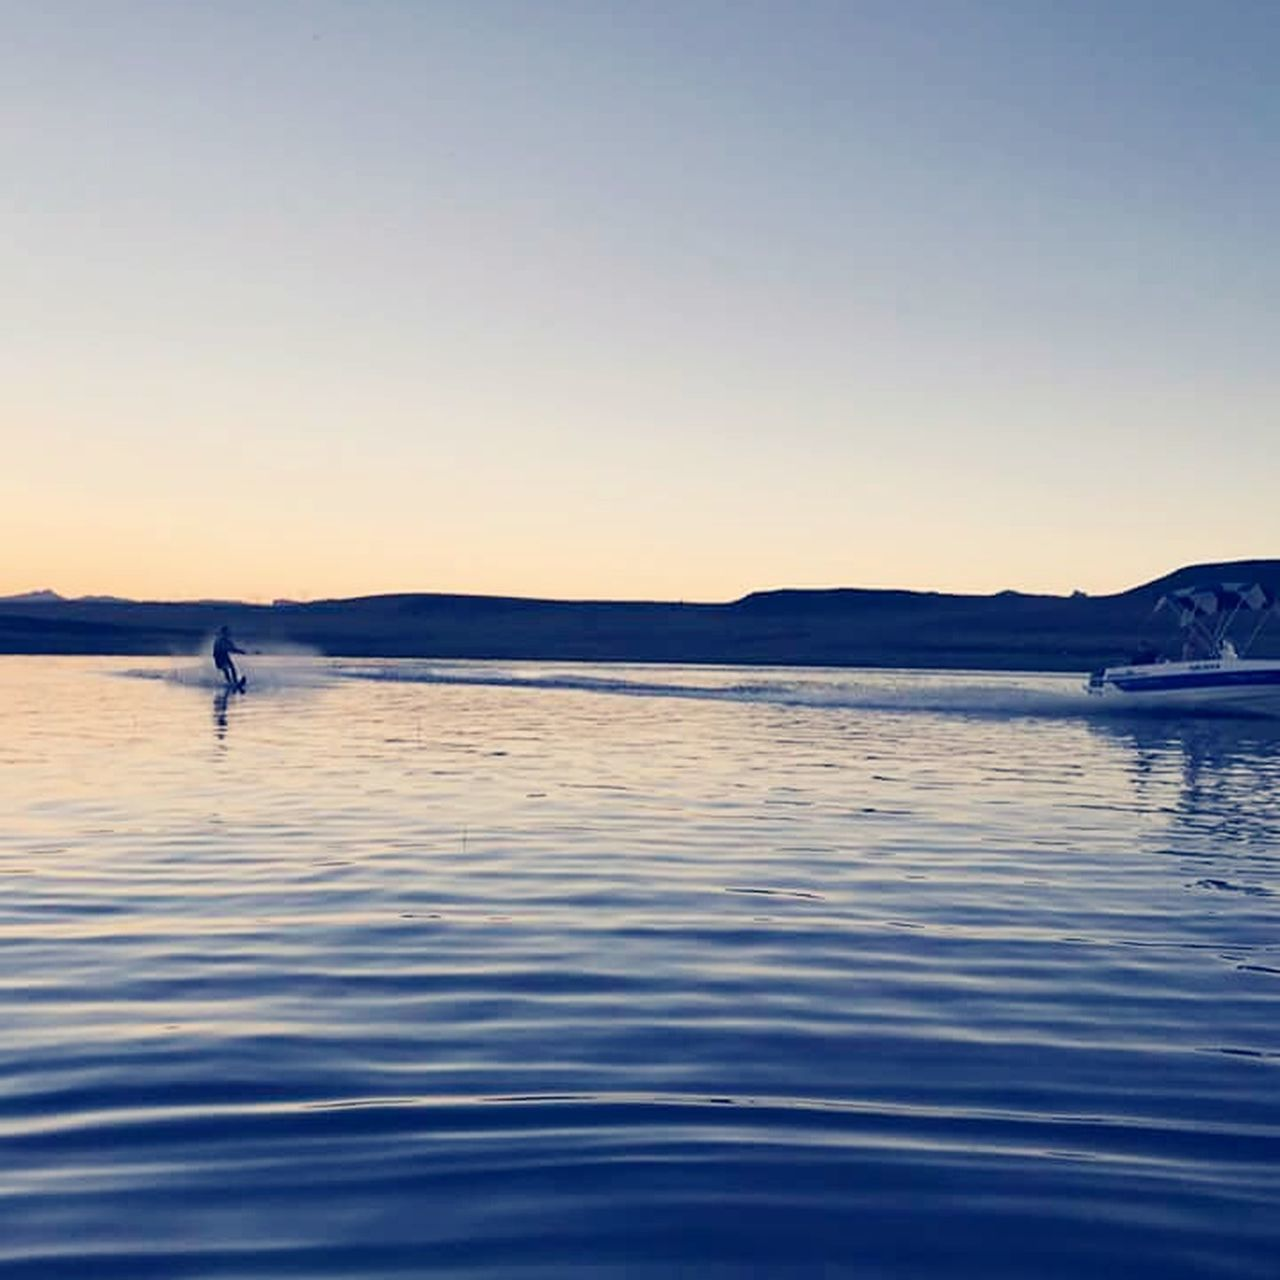 water, nature, clear sky, tranquility, beauty in nature, scenics, sunset, waterfront, outdoors, rippled, tranquil scene, lake, blue, nautical vessel, sky, mountain, transportation, no people, vacations, travel destinations, sailing, day, paddleboarding